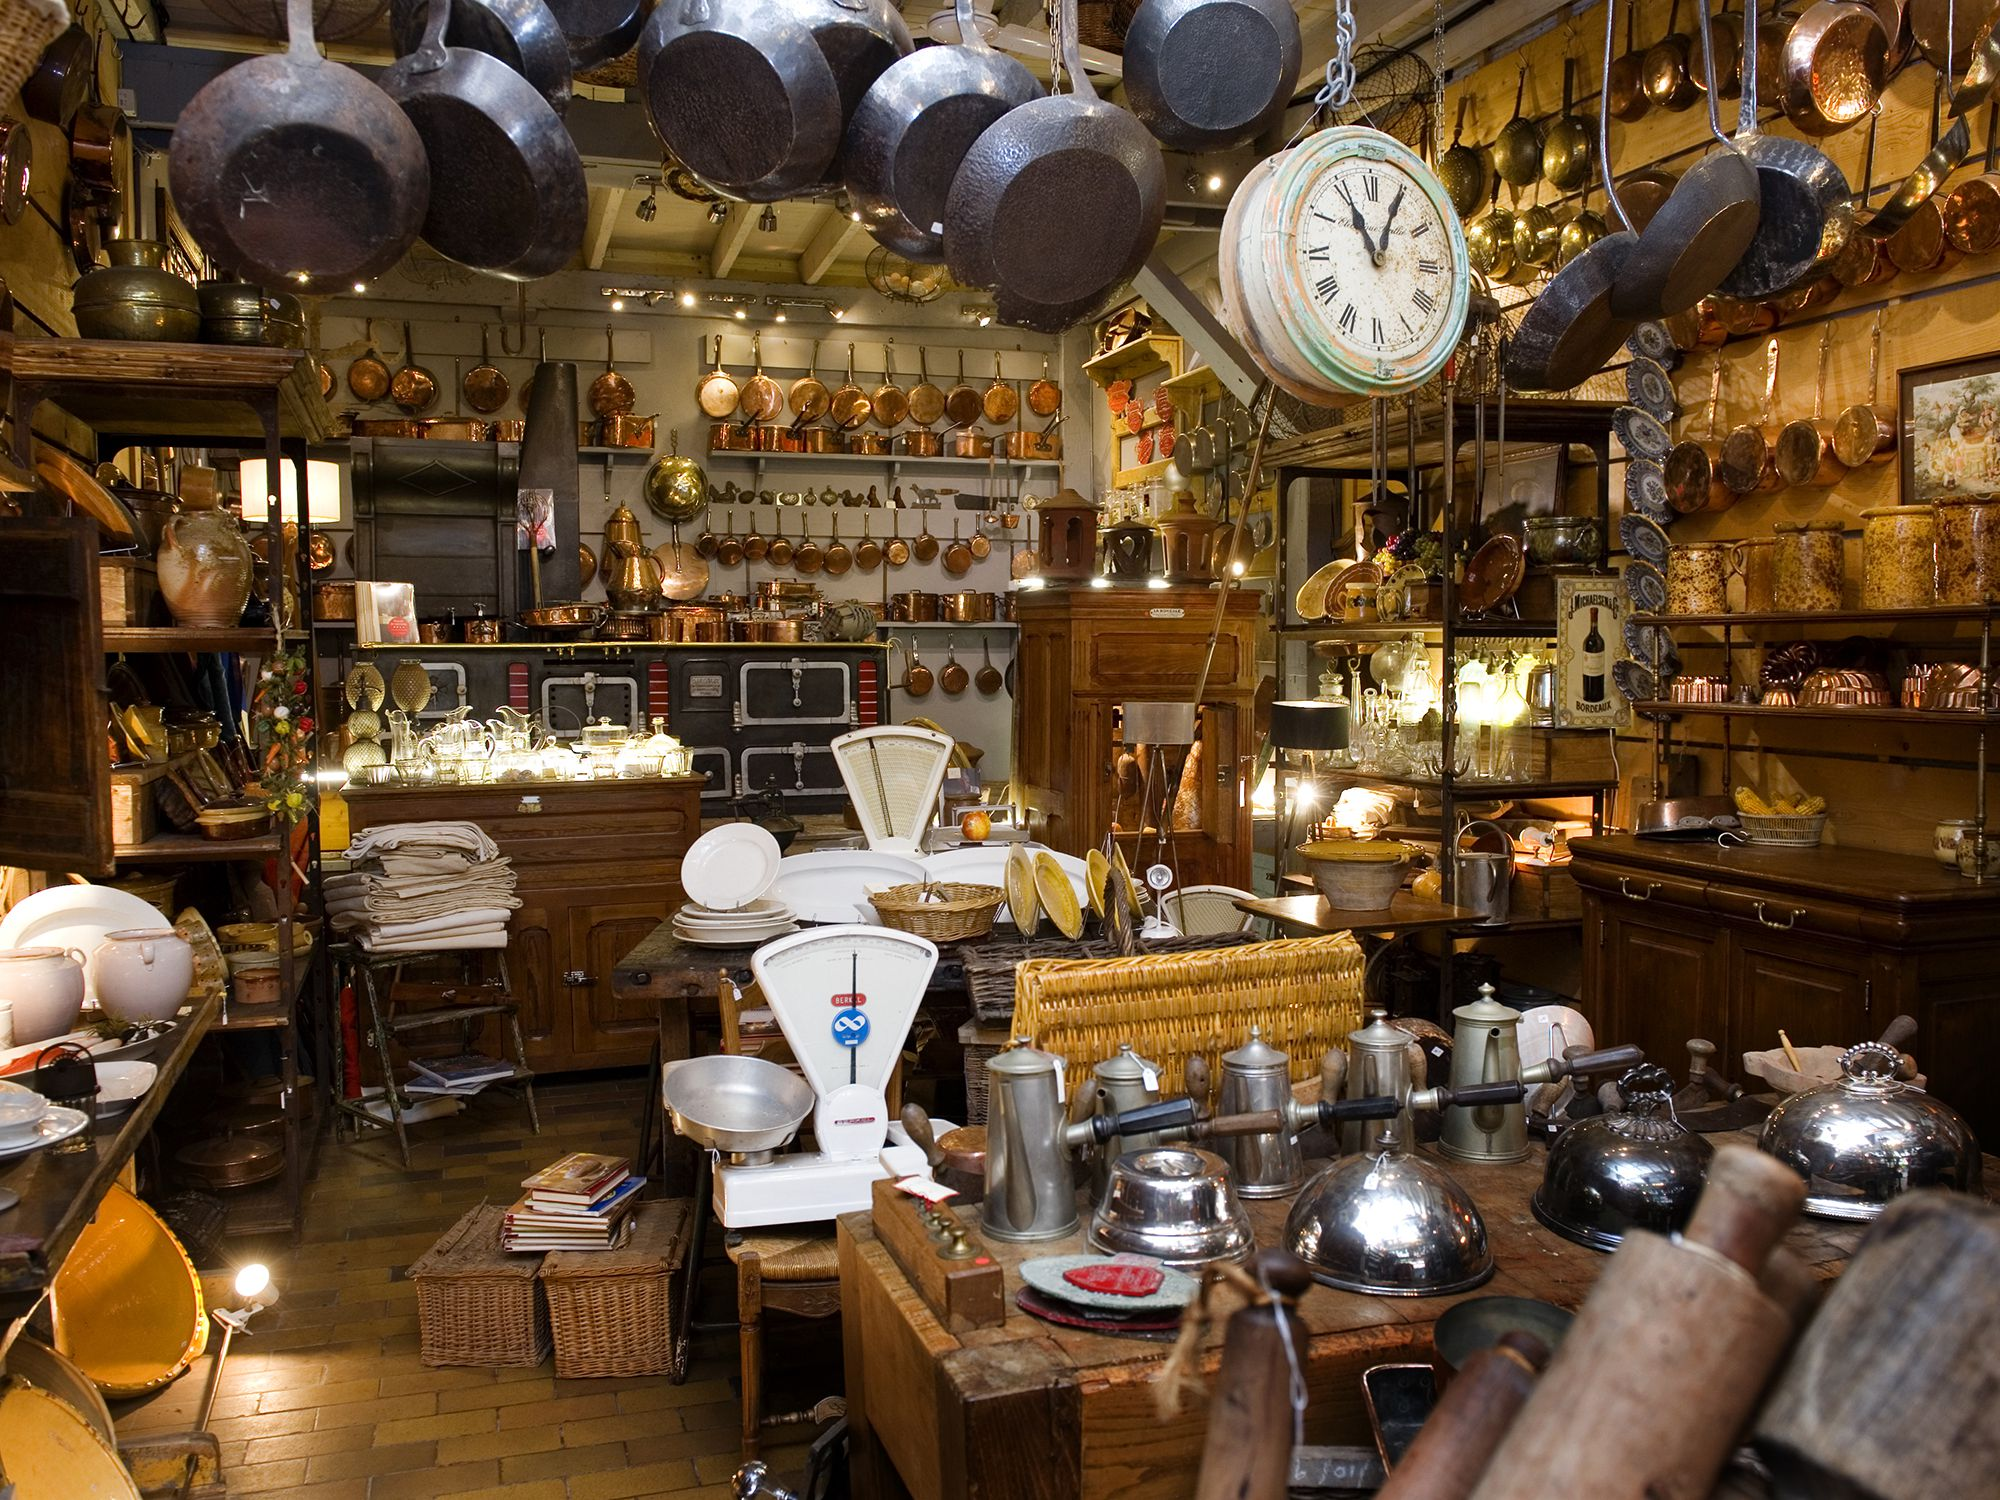 Kitchen Tools And Gadgets As Collectibles